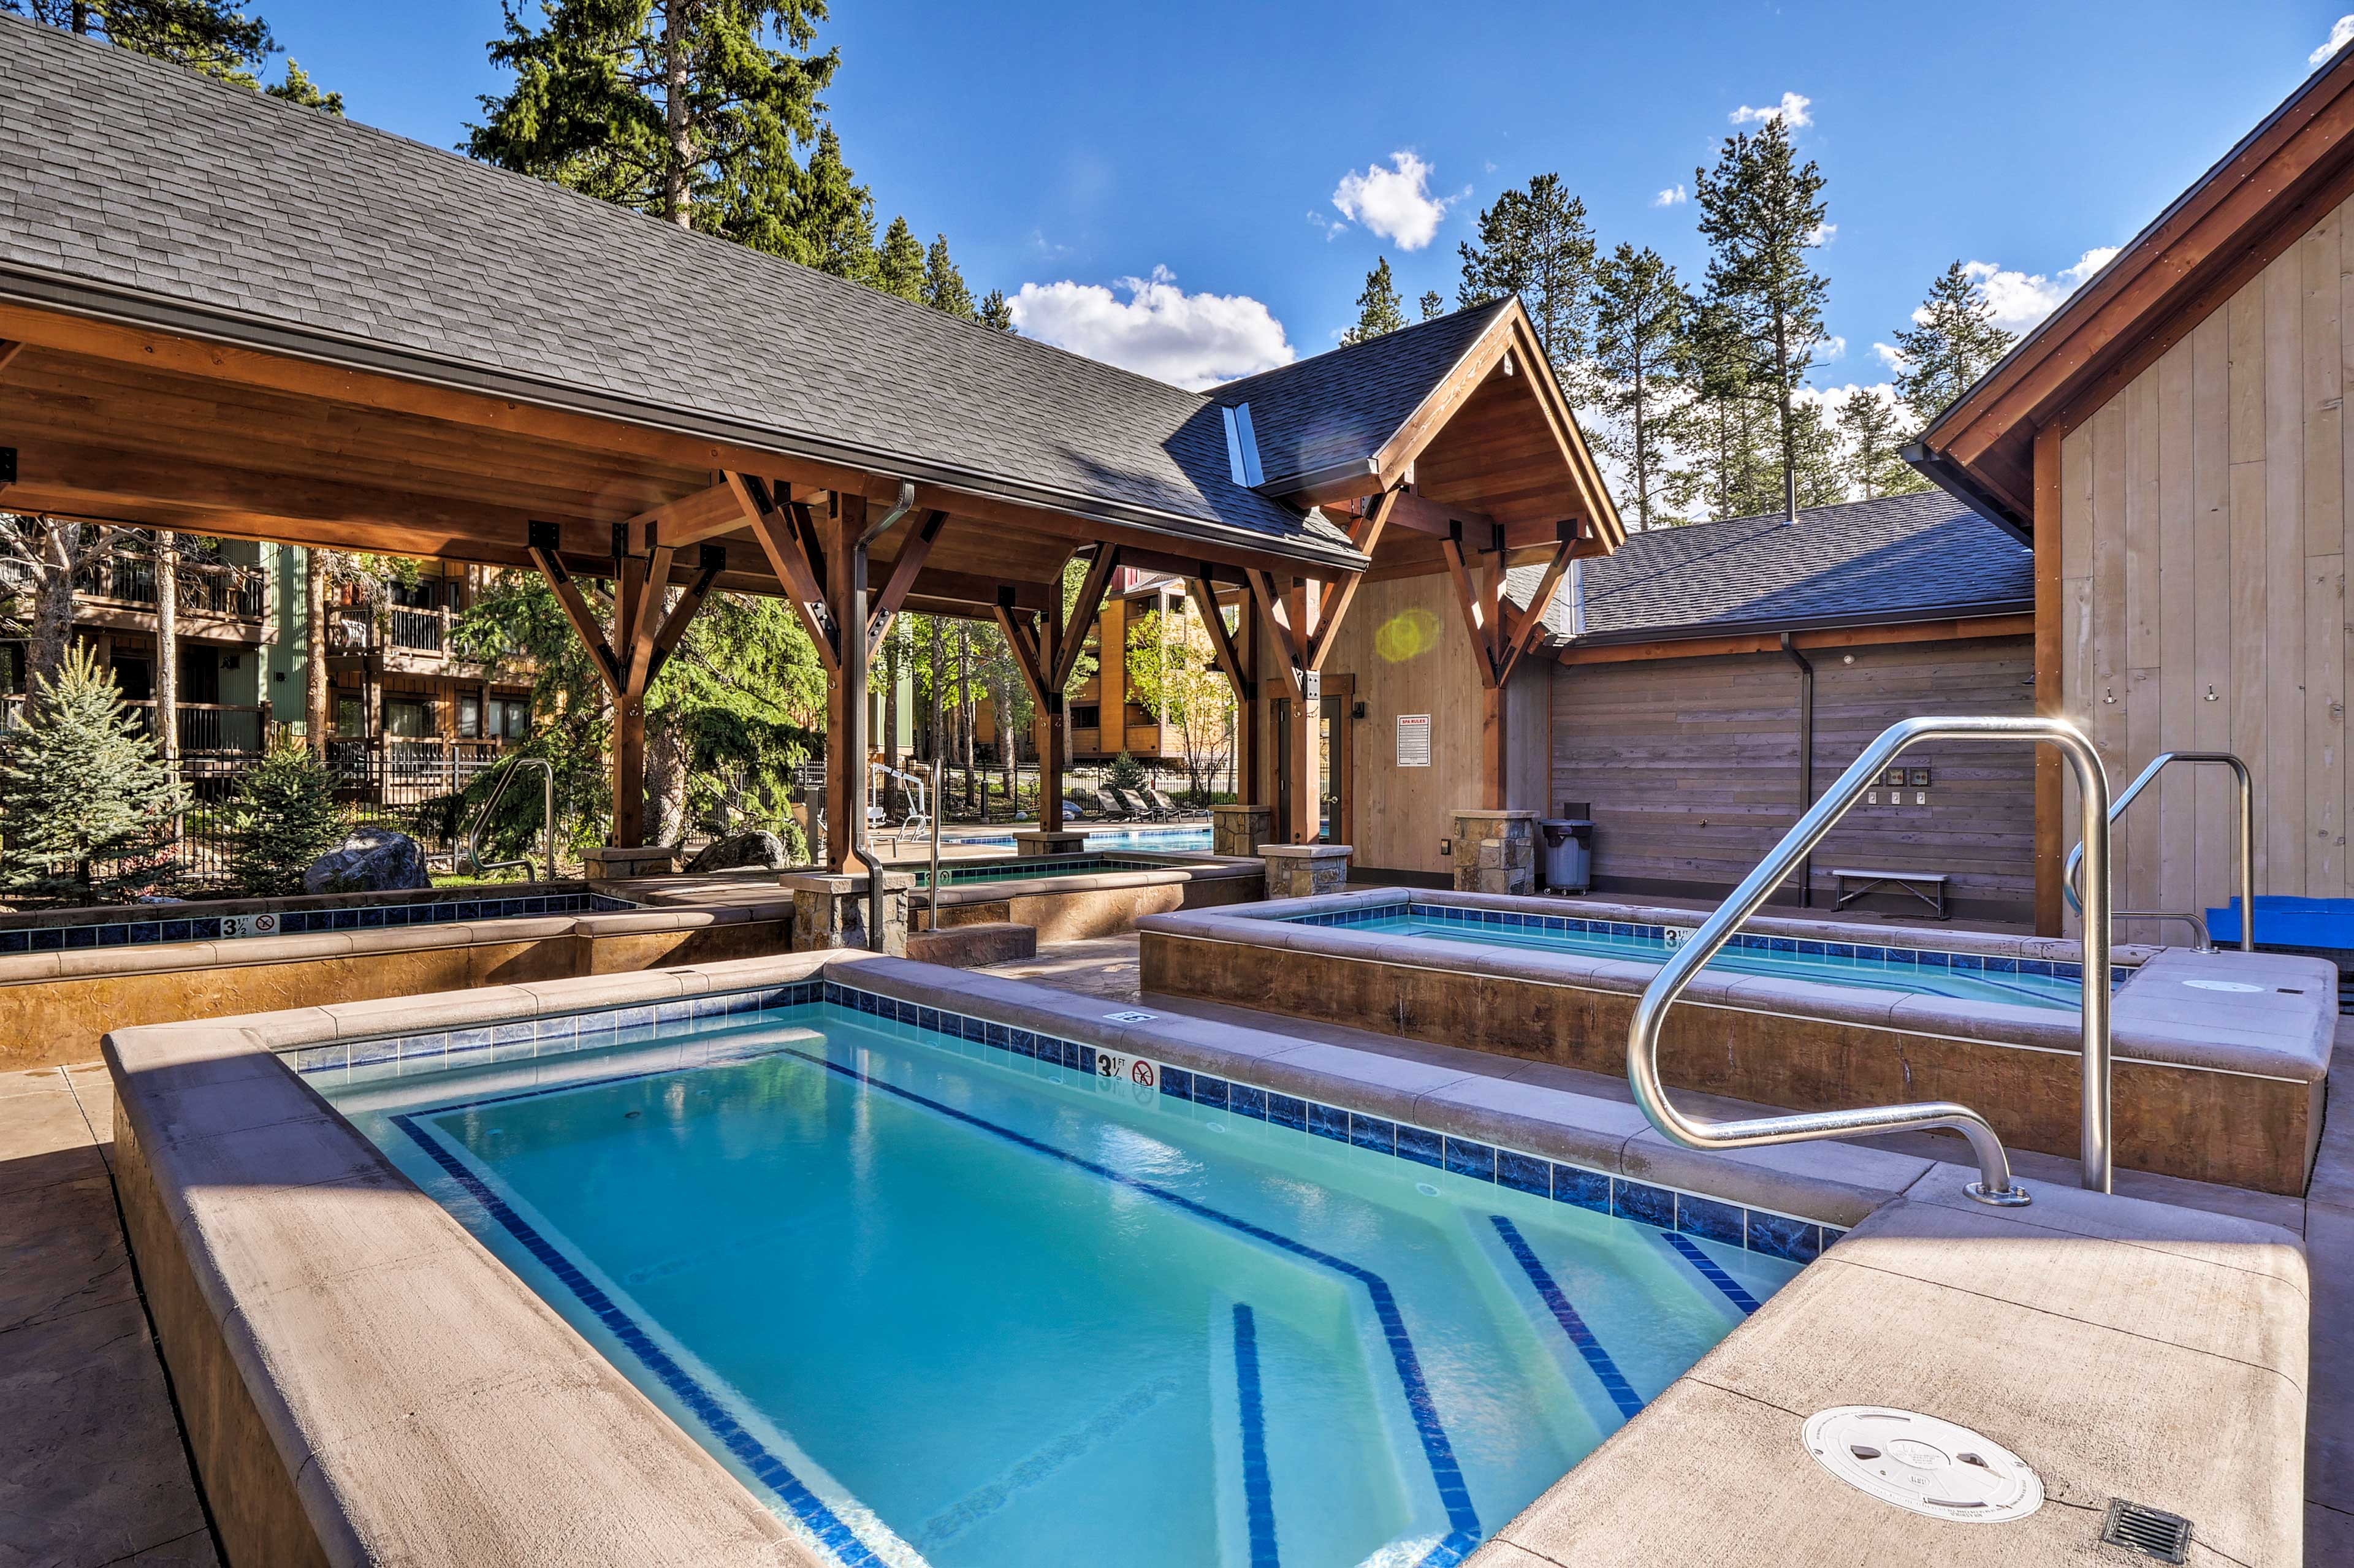 Soaking in the hot tub is the perfect post-ski remedy.